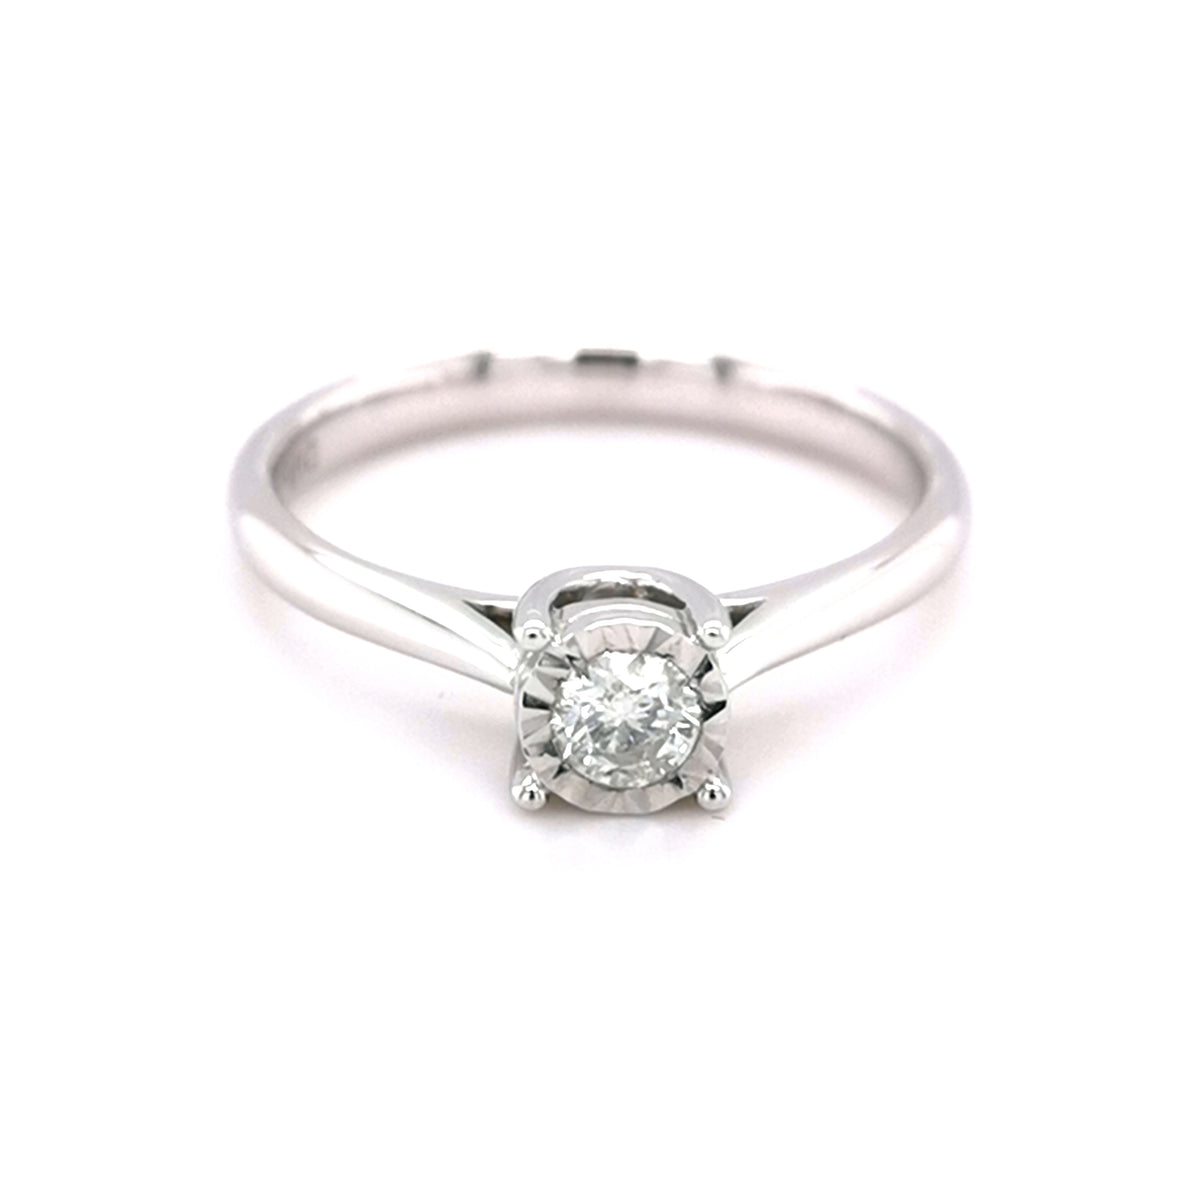 9ct White Gold Diamond Solitaire Ring - Sonny's